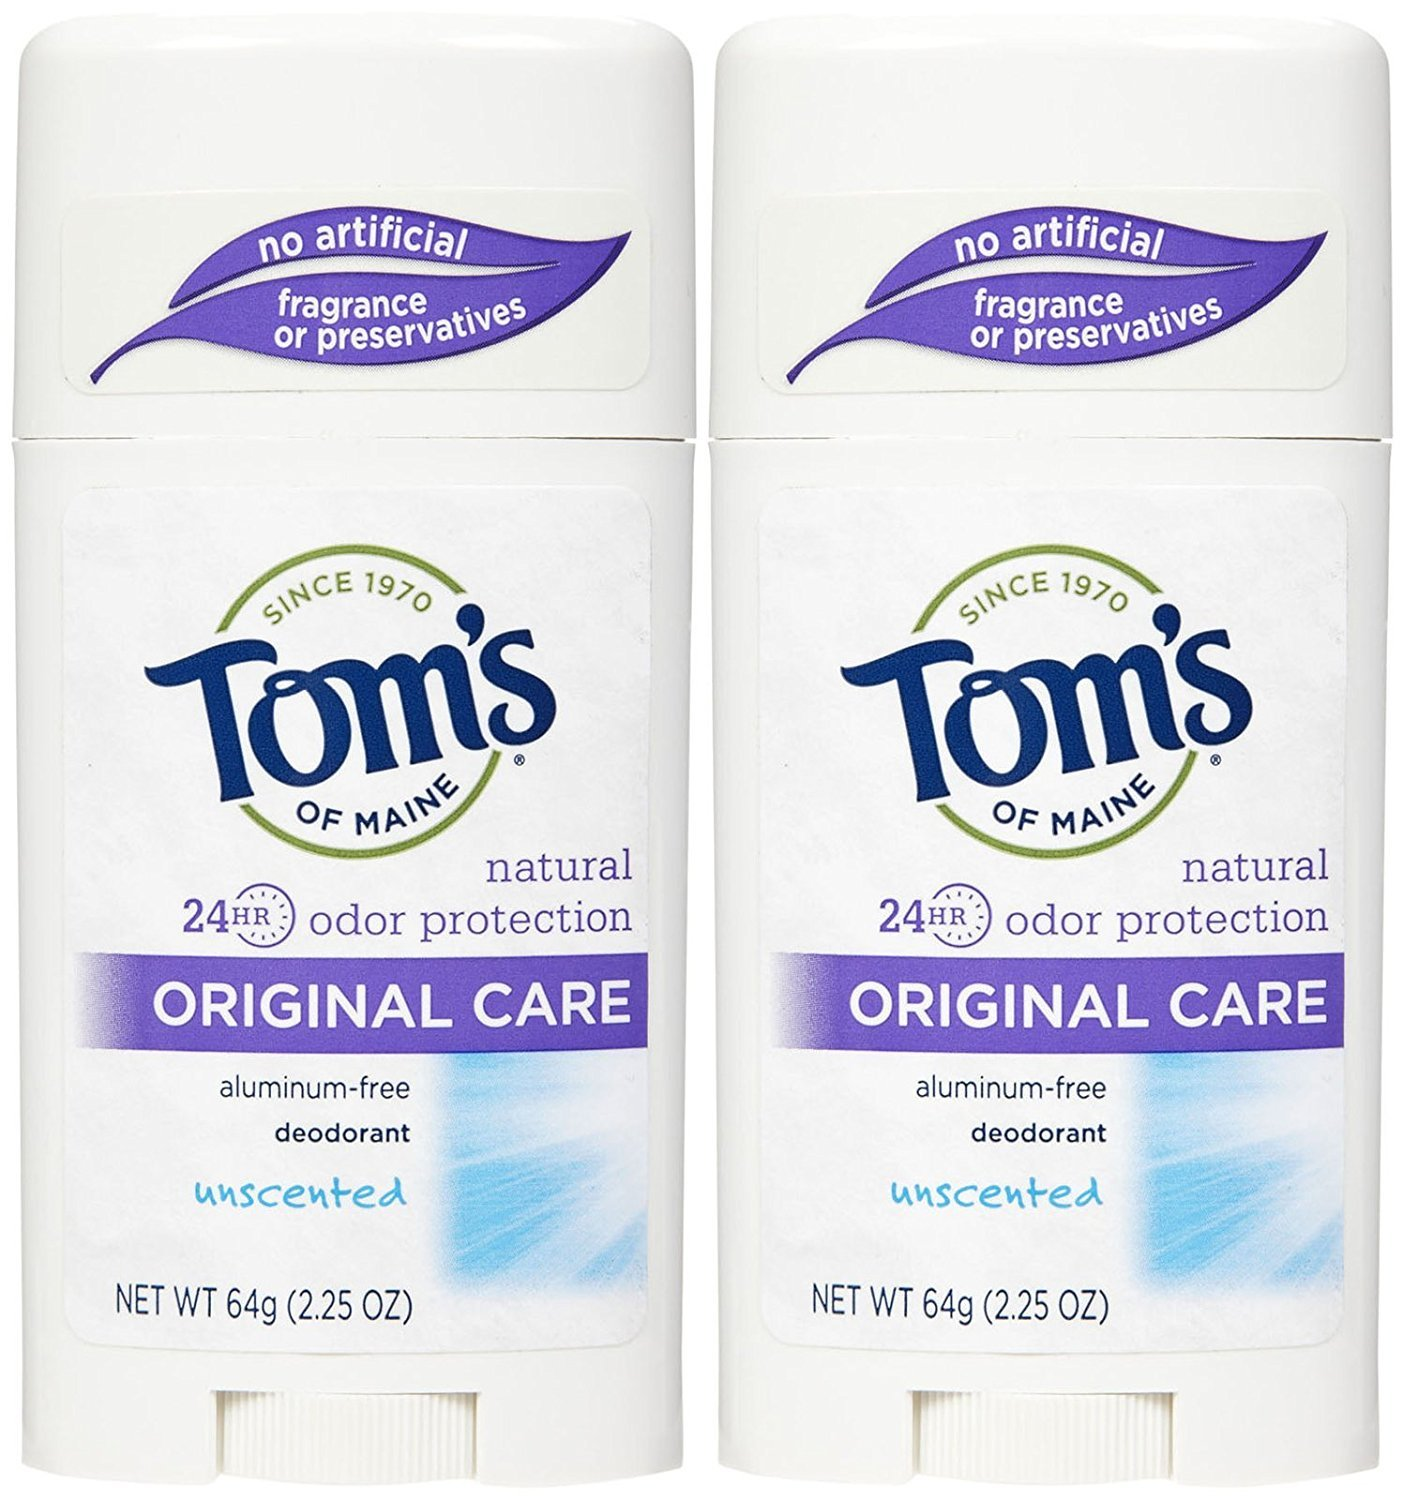 Tom's of Maine Natural Deodorant Stick Unscented 2.25 oz (Pack of 2)